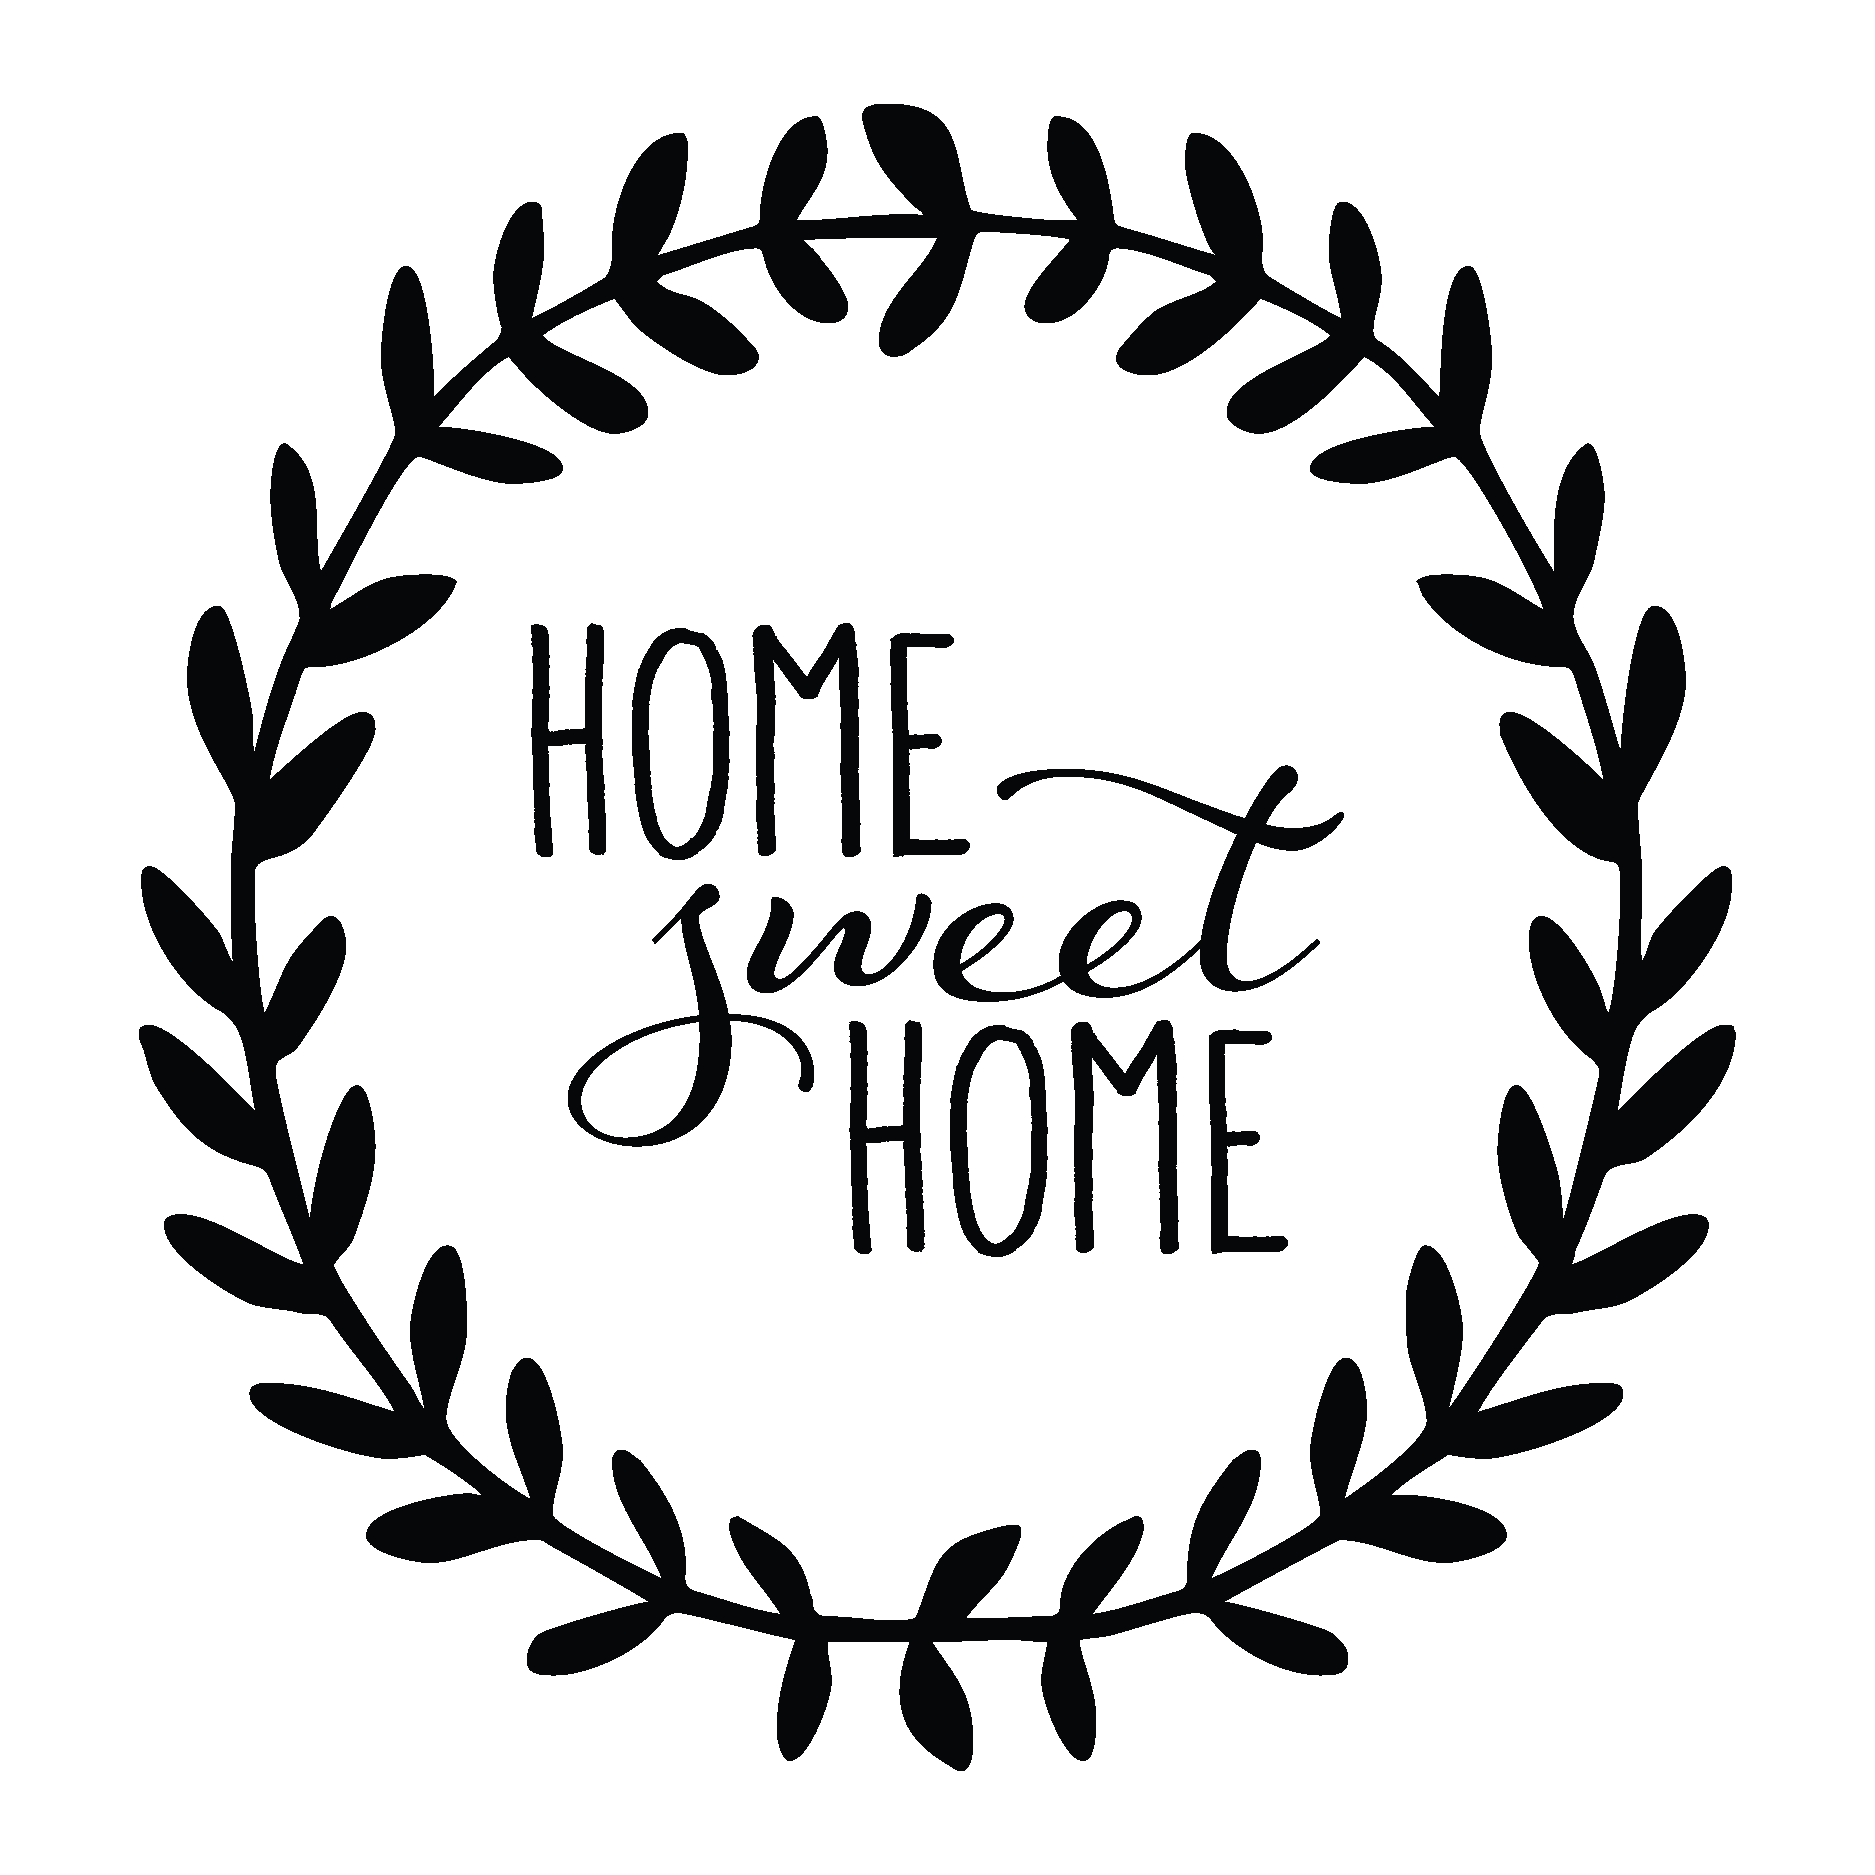 Home sweet home clipart picture transparent Home sweet home clipart png - ClipartFest picture transparent